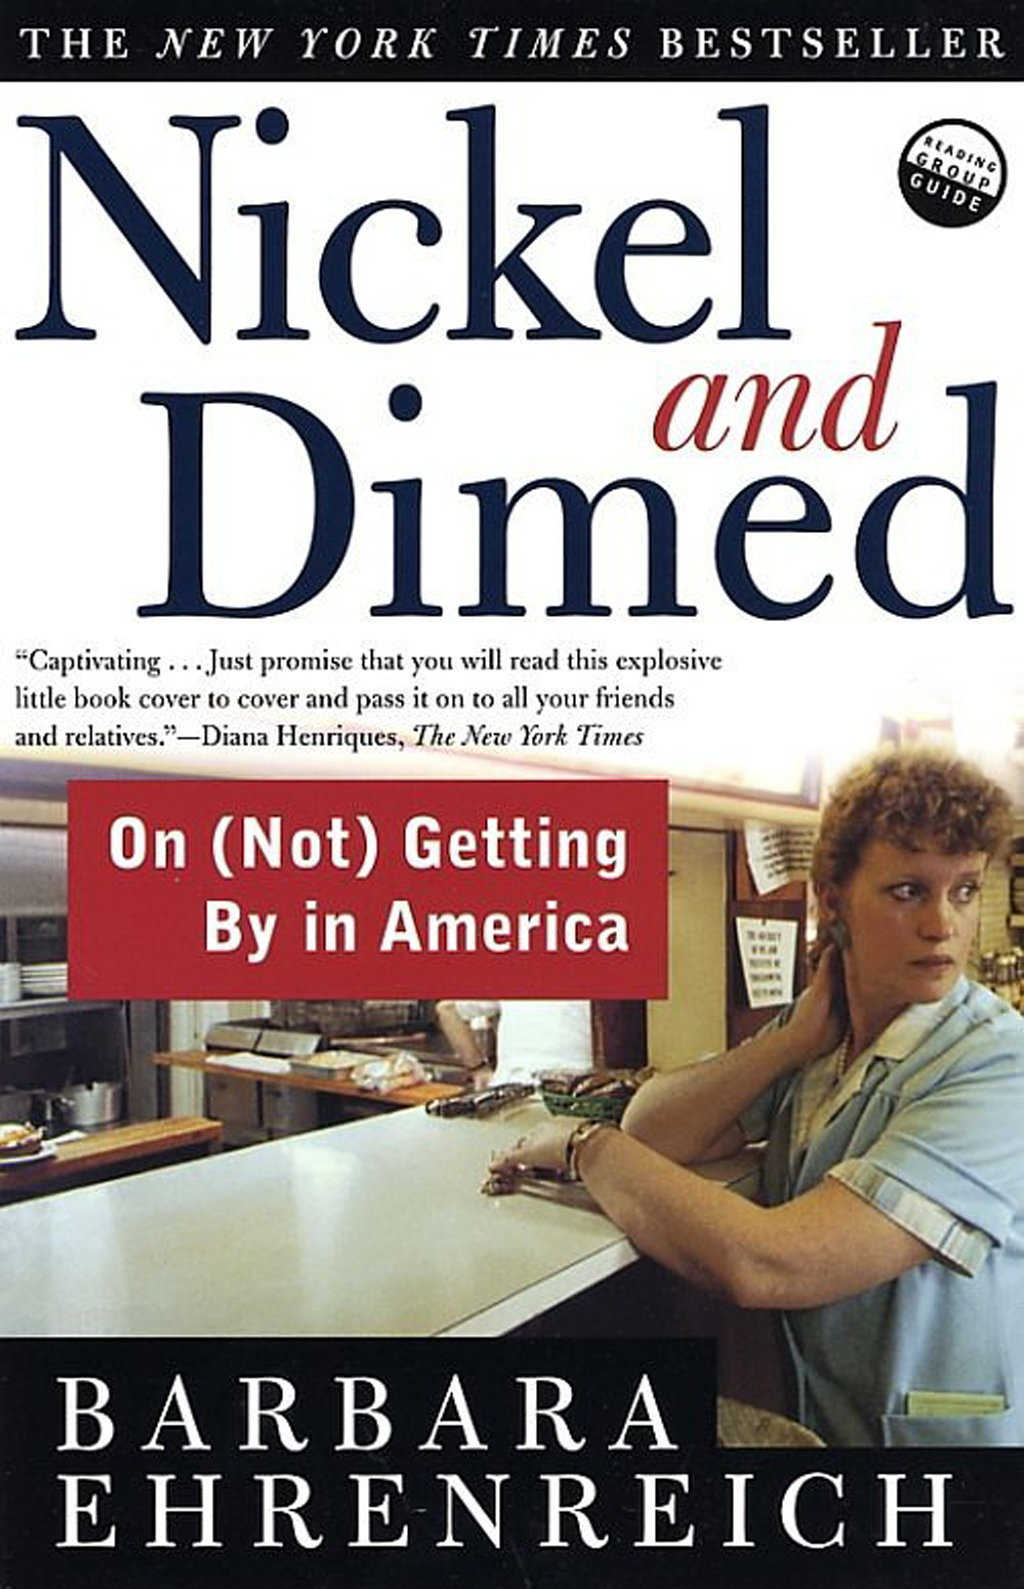 Nickel and Dimed — Best-selling author Barbara Ehrenreich details one of America's primary problems: housing for low-income wage earners.